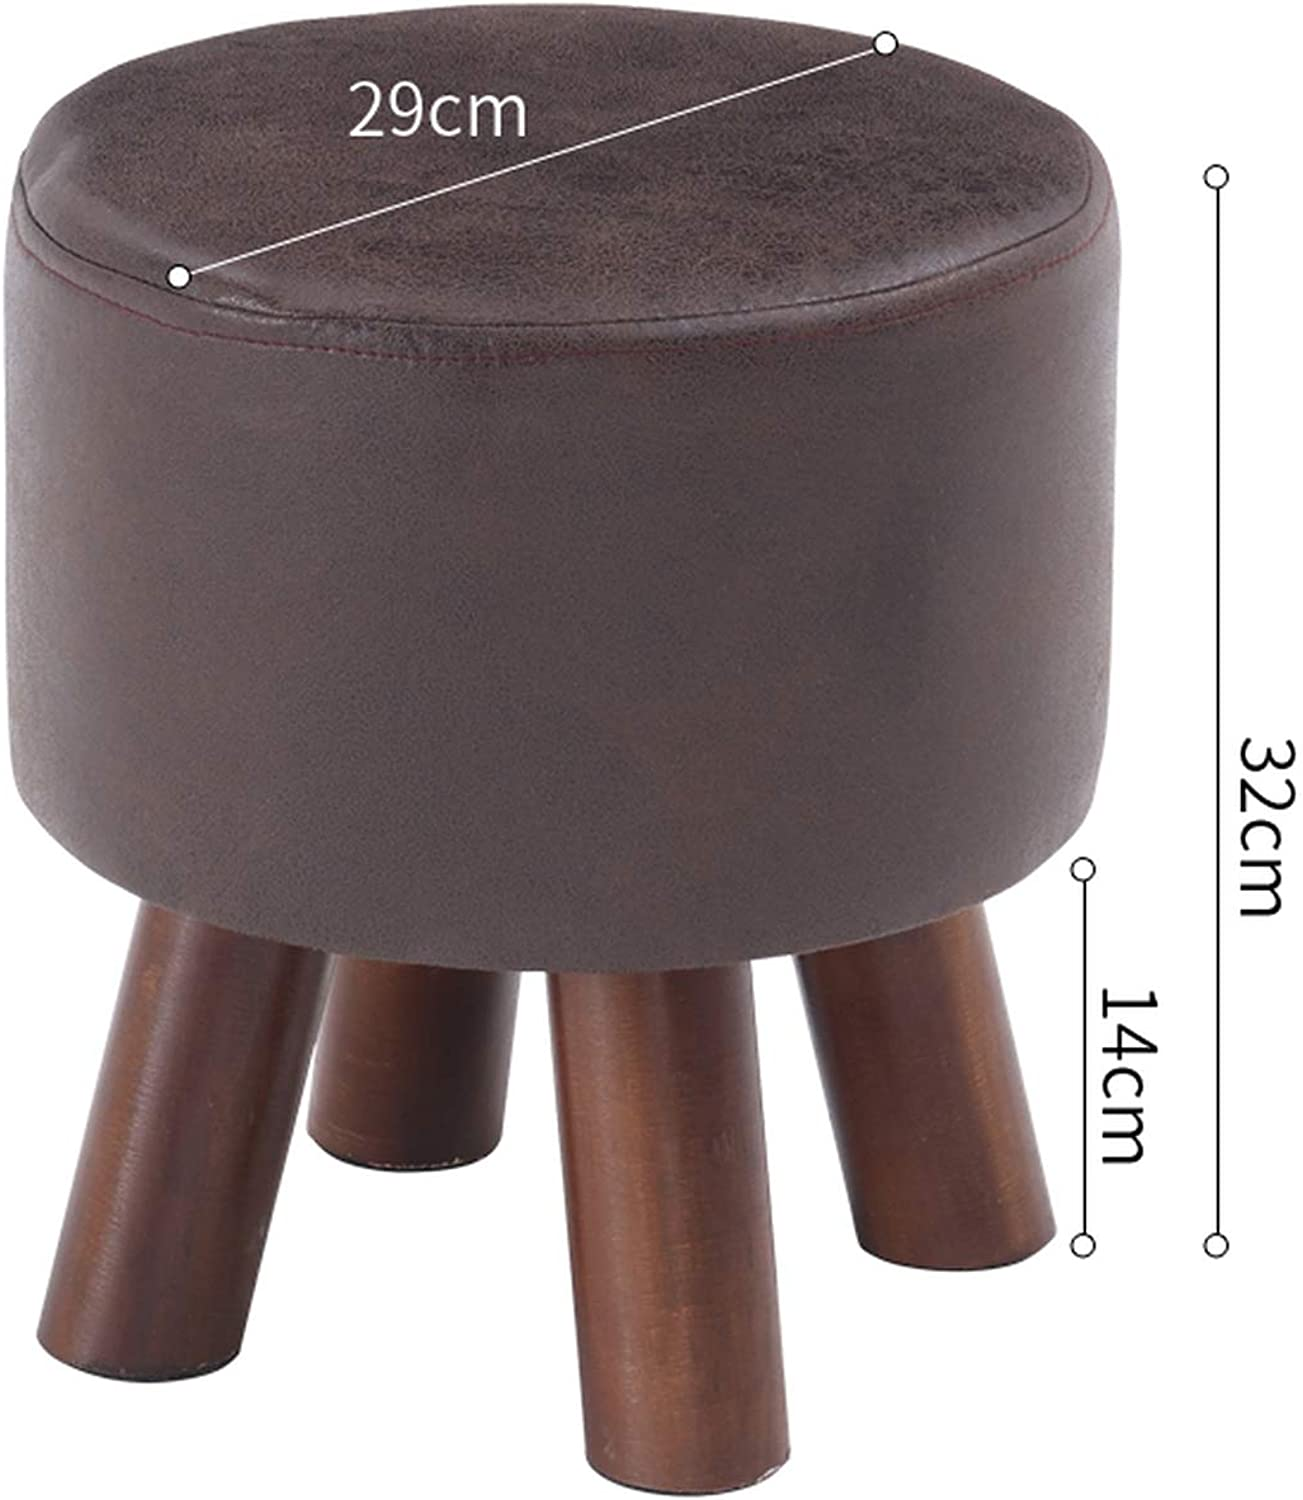 KKK-3boss Solid Wood Stool Fashion Stool Creative shoes Bench Sofa Bench Home Stool Small Bench Dining Table Stool,C01